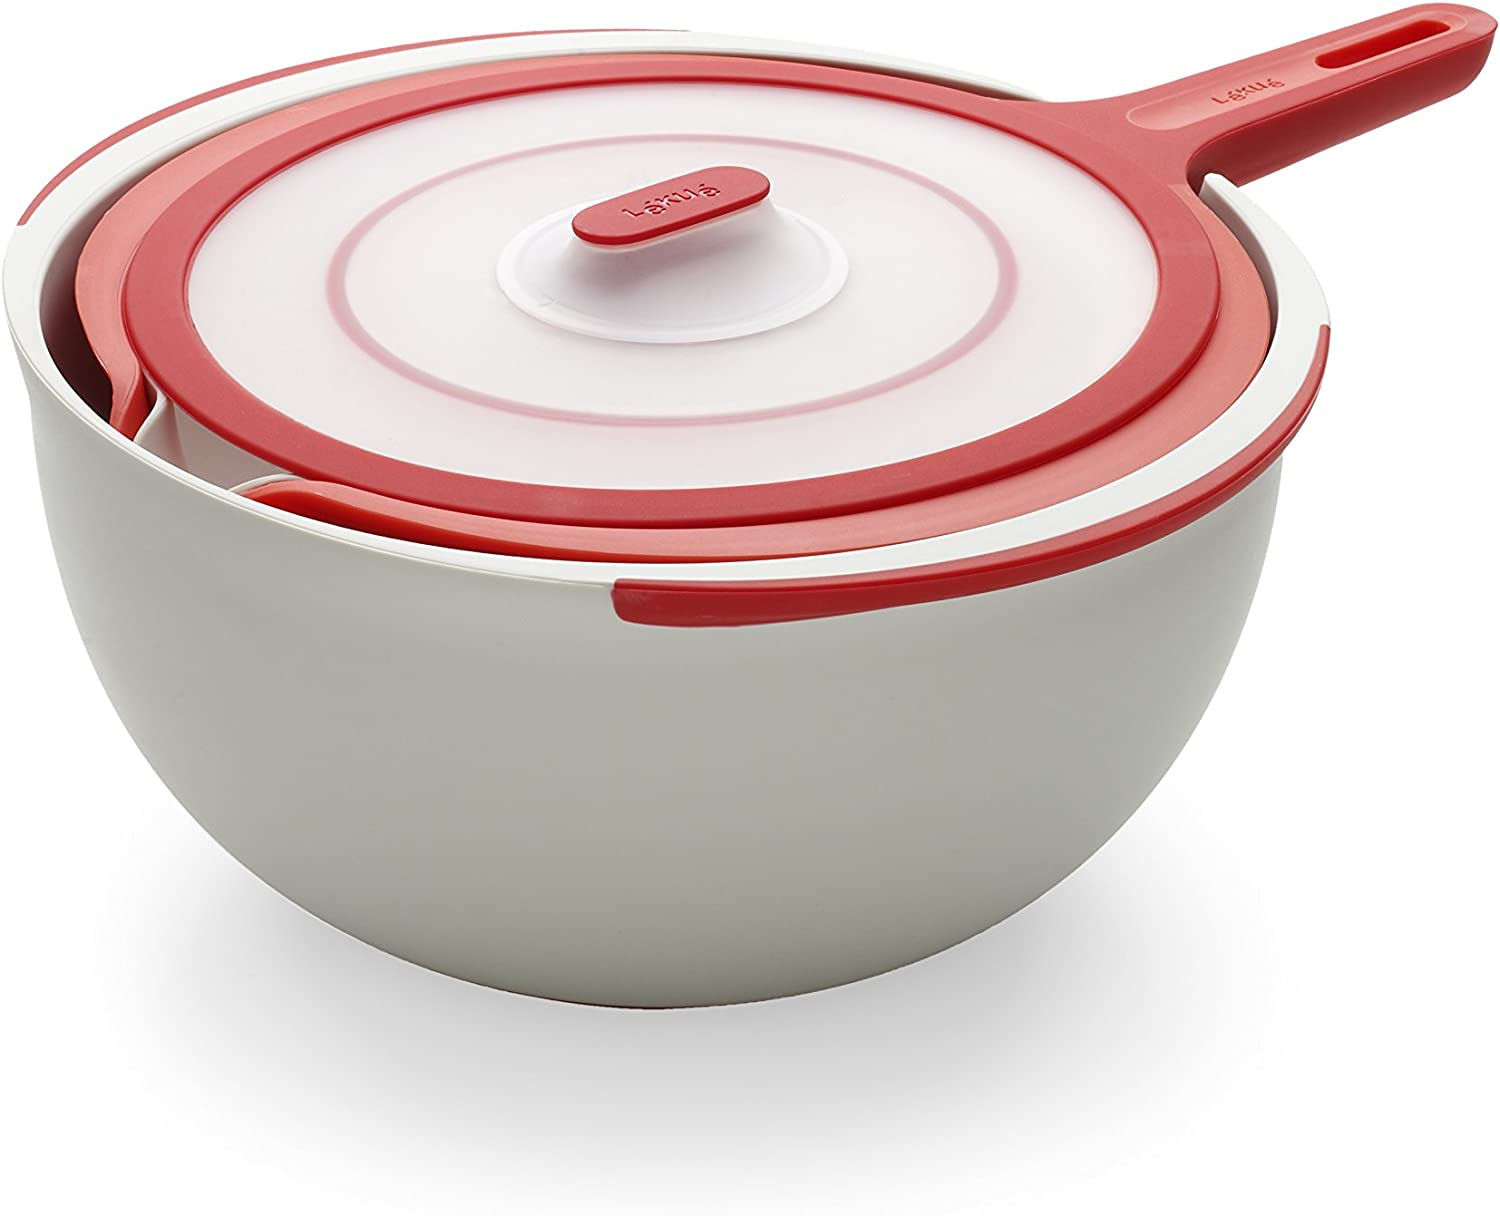 Lekue 3 Piece Mixing Bowl, Red